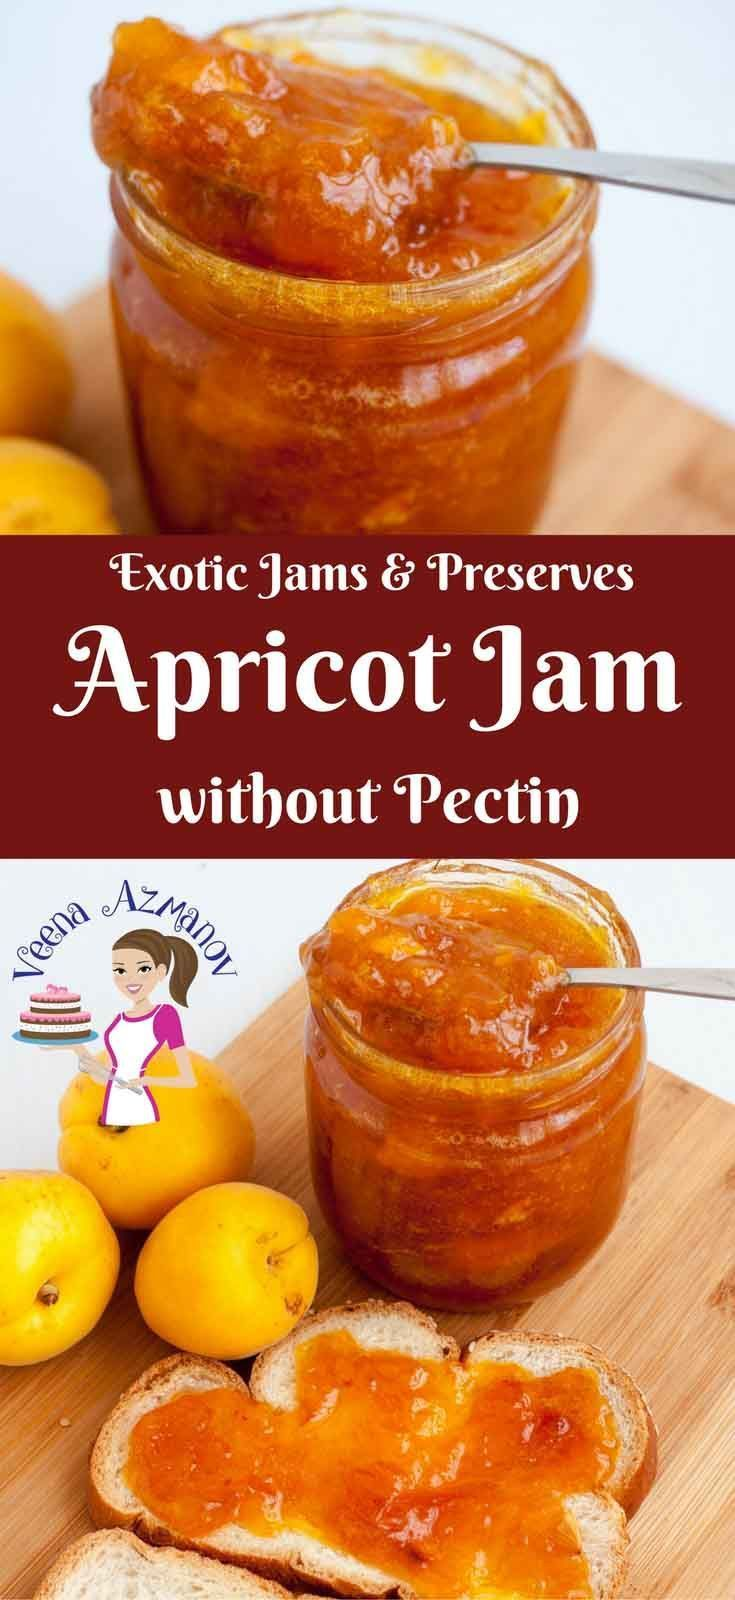 APRICOT JAM WITHOUT PECTIN  CLASSIC APRICOT JAM RECIPE WITH LESS SUGAR Nothing b…